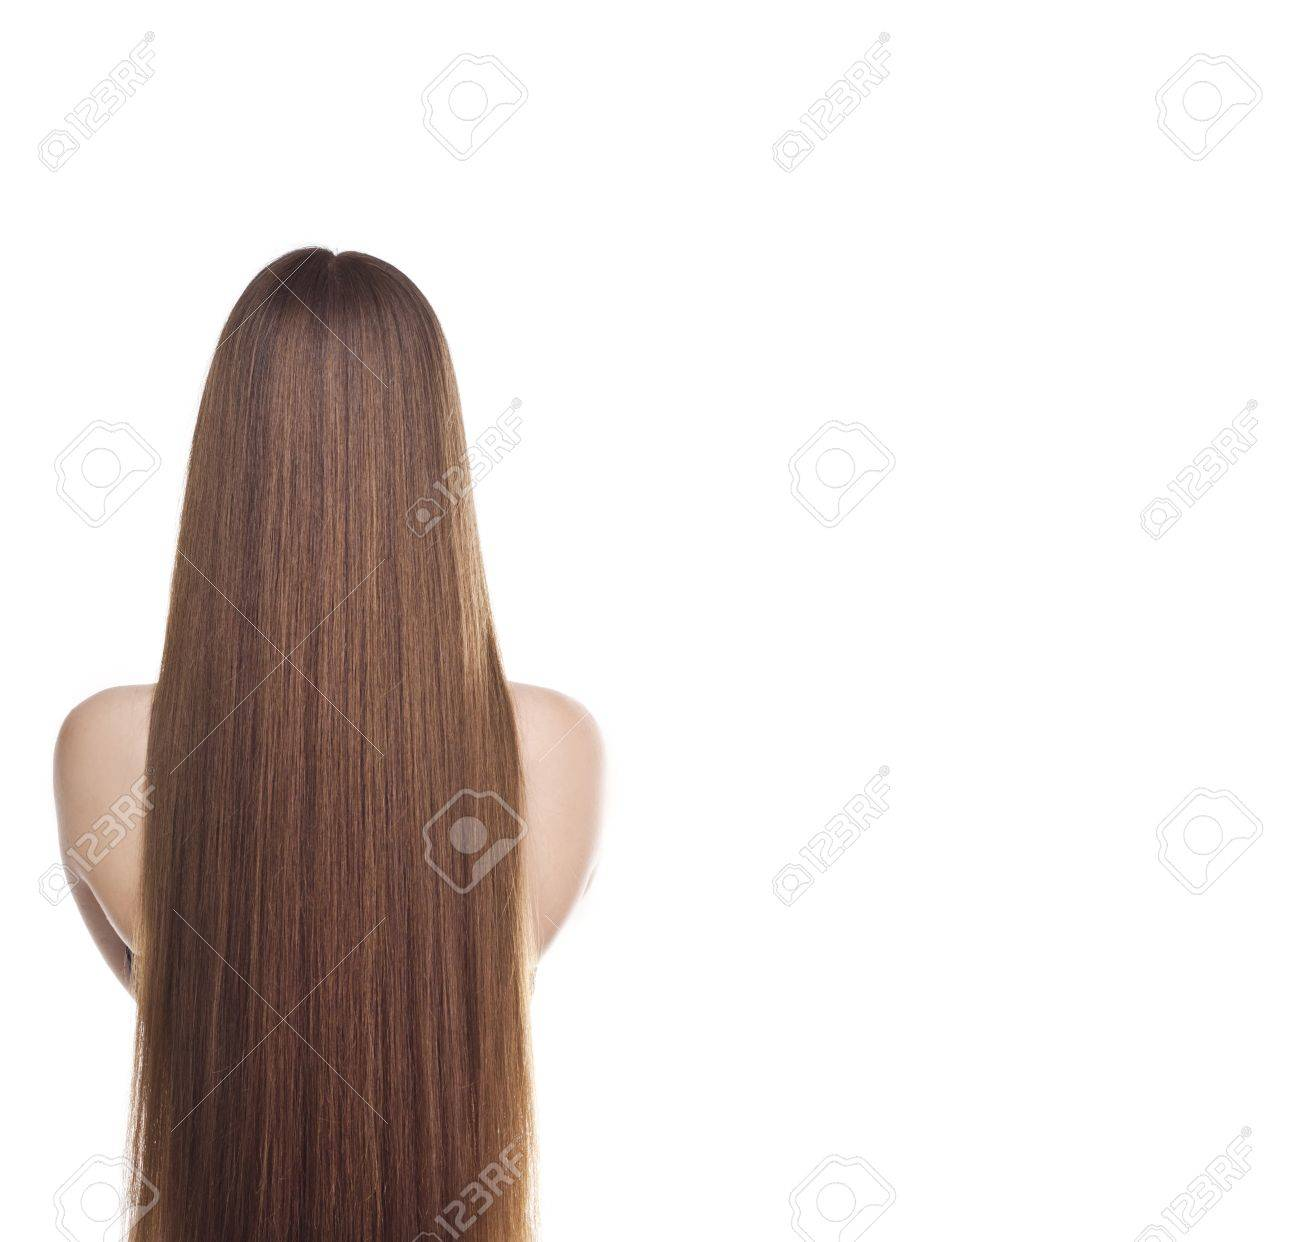 Hair long back straight exclusive photo